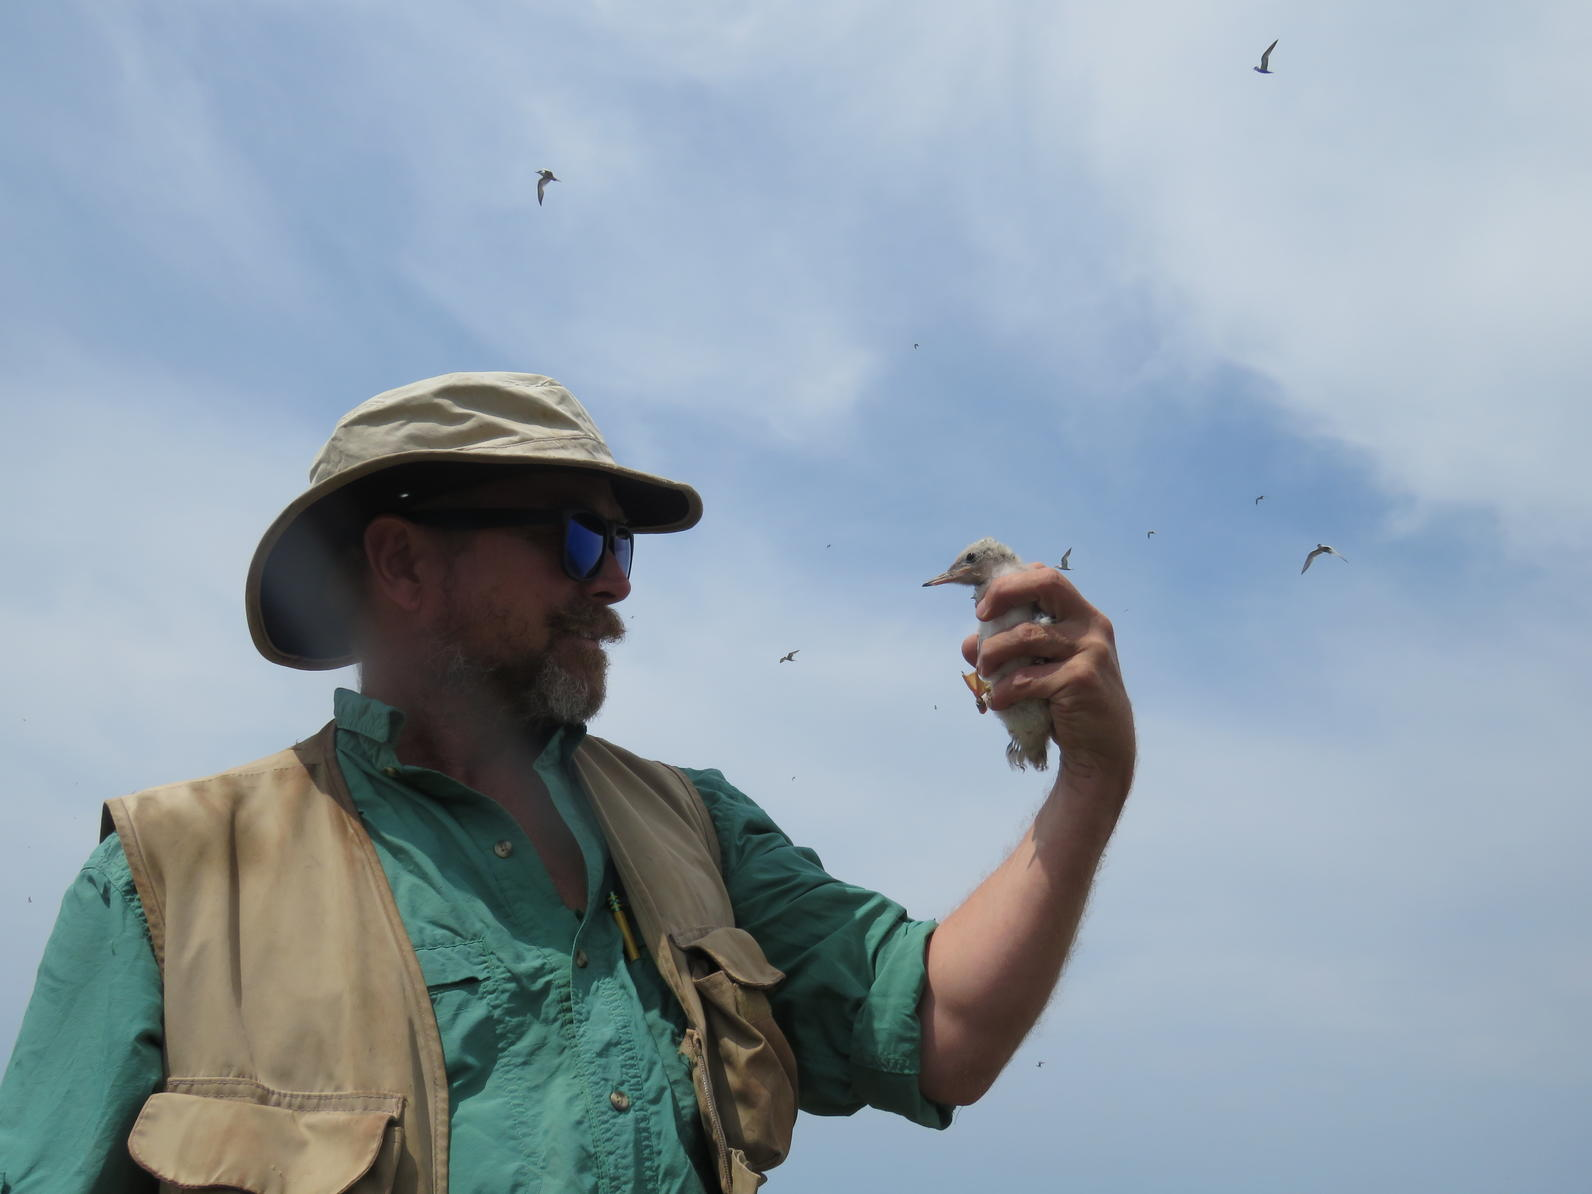 Mark LaBarr holds chick while waterbird soar in background